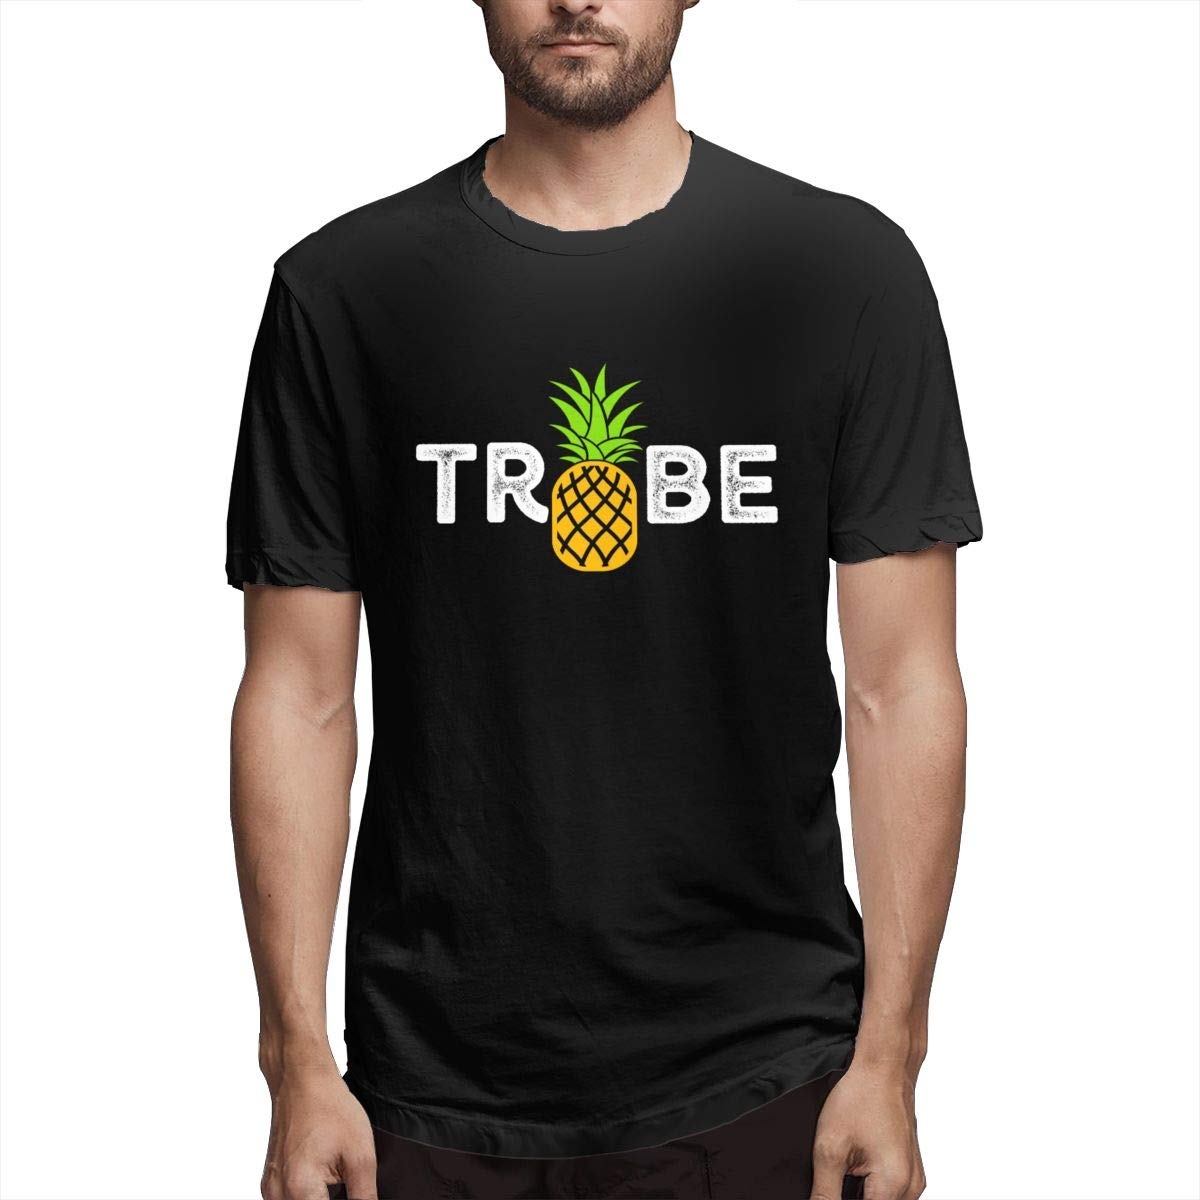 Xuforget Men Bride Tribe Pineapple Popular Short Sleeve T-Shirts Cotton Tops